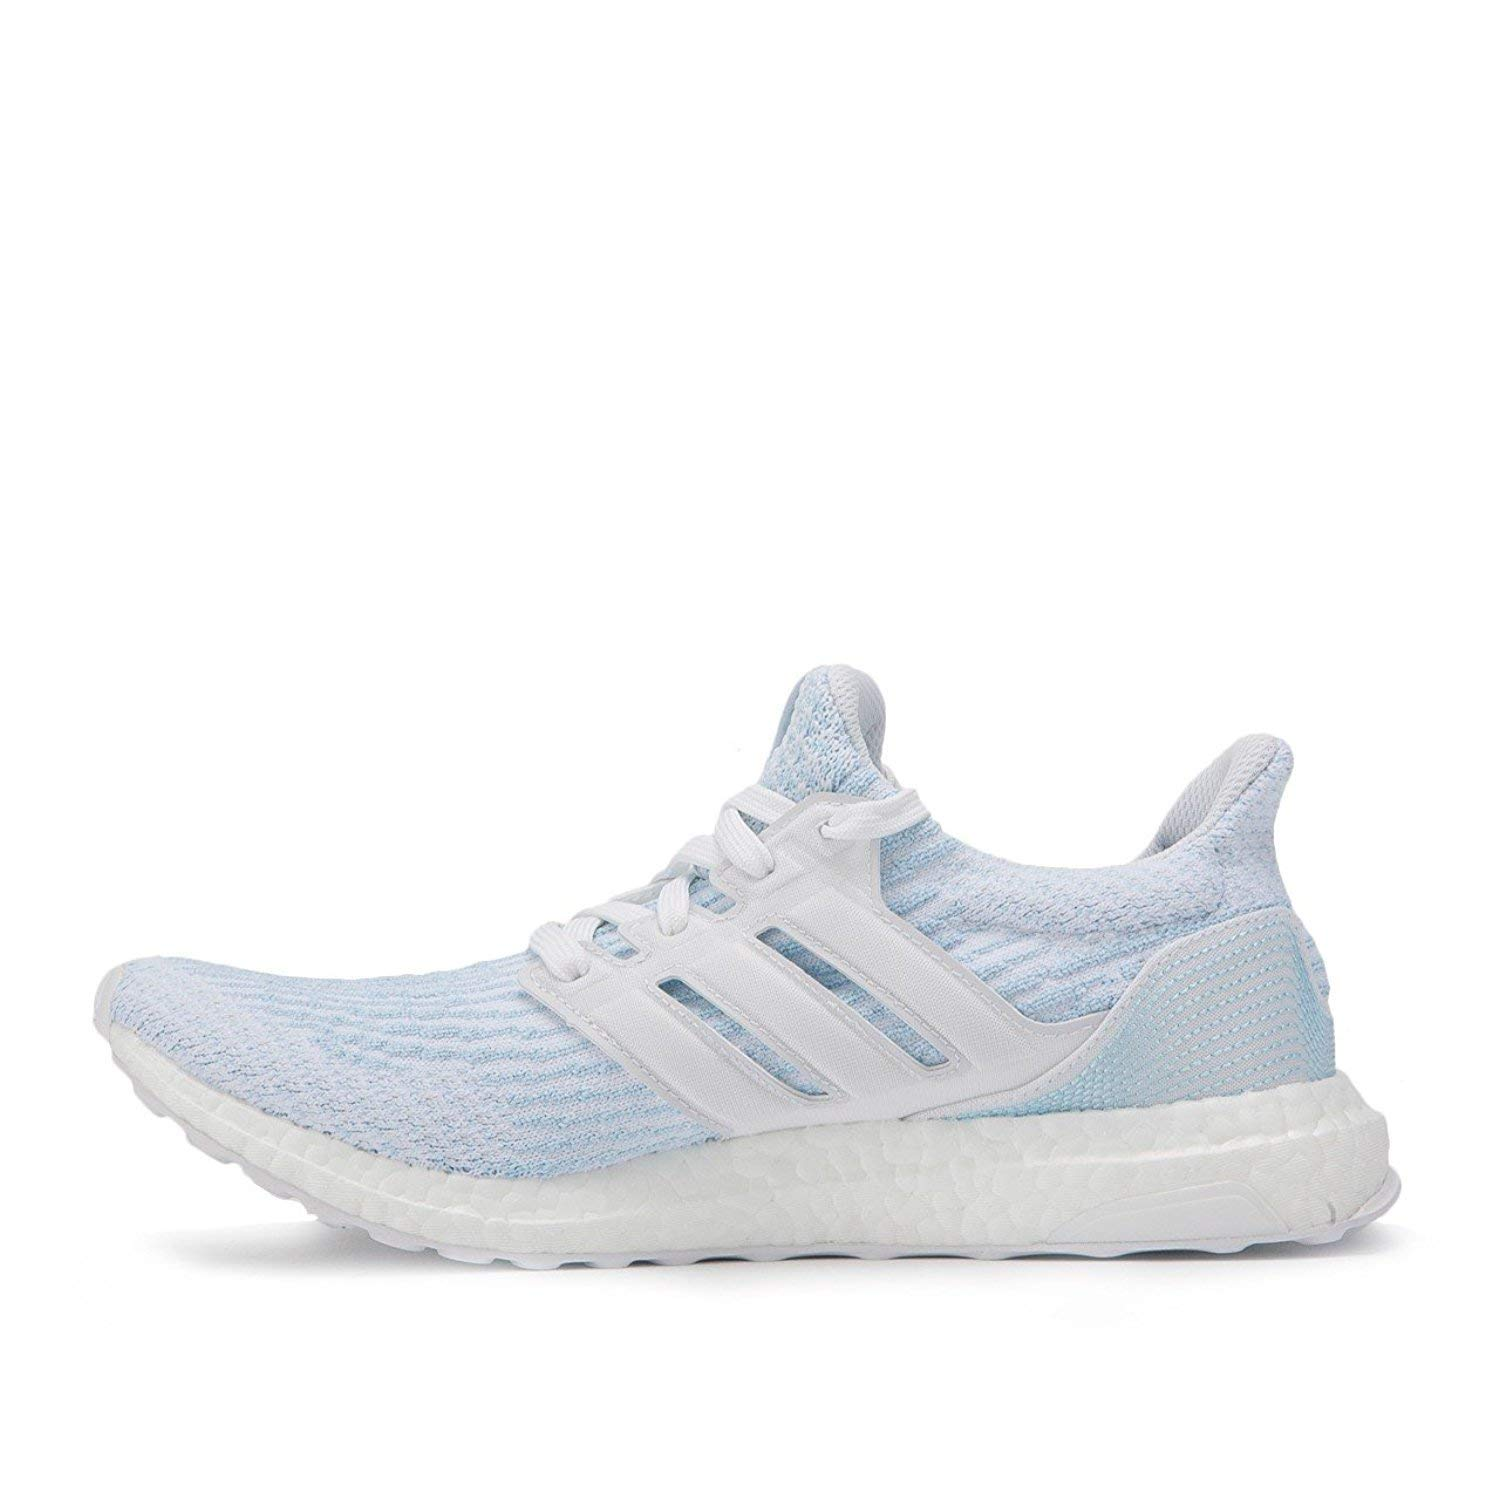 ae411e7d4a144 adidas Men's Ultraboost 3.0 Running Shoes Parley - CP9685 US 10